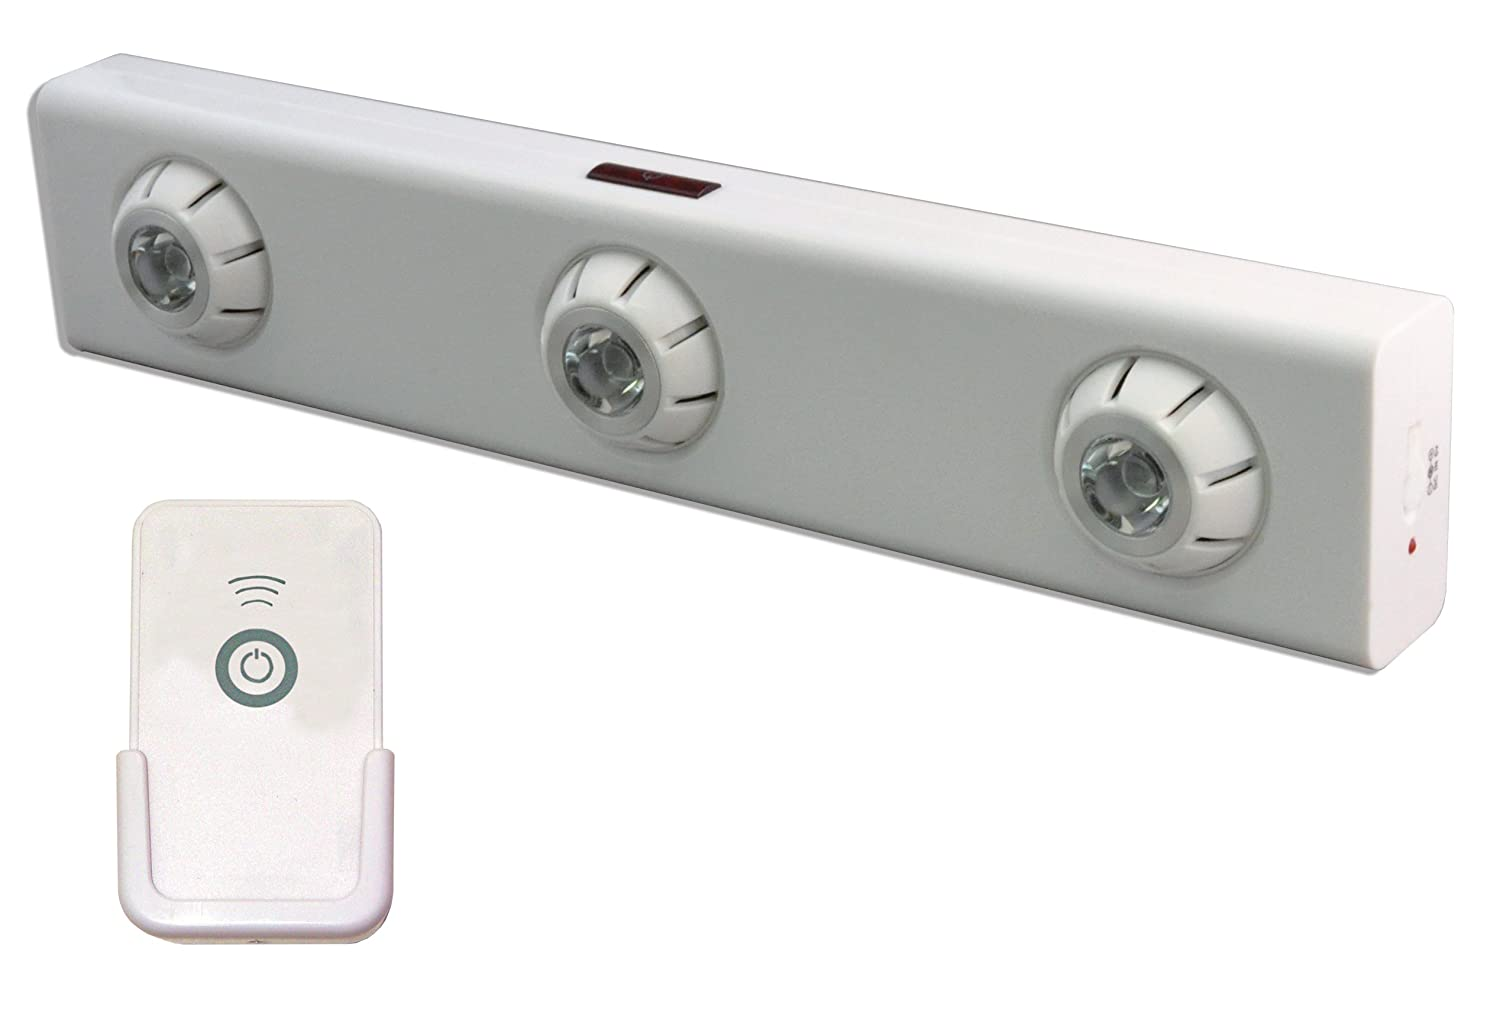 Rite Lite LPL1700WRCAC High Output LED Under Cabinet Light with Remote, 2.5 x 1.25 x 11.8 , White